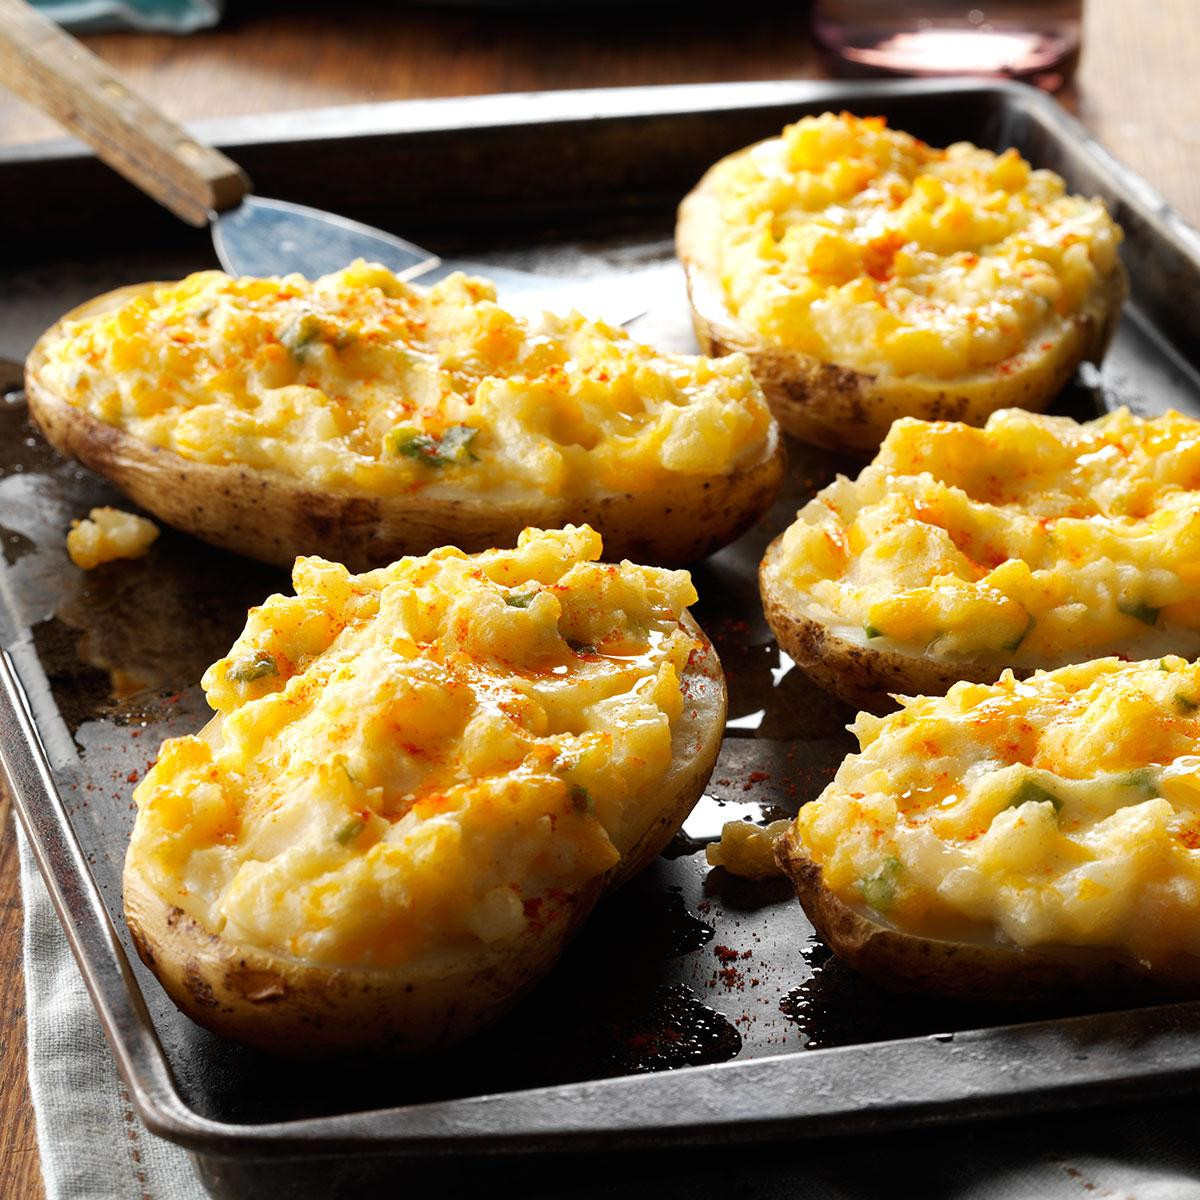 Stuffed Baked Potato  Cheesy Stuffed Baked Potatoes Recipe